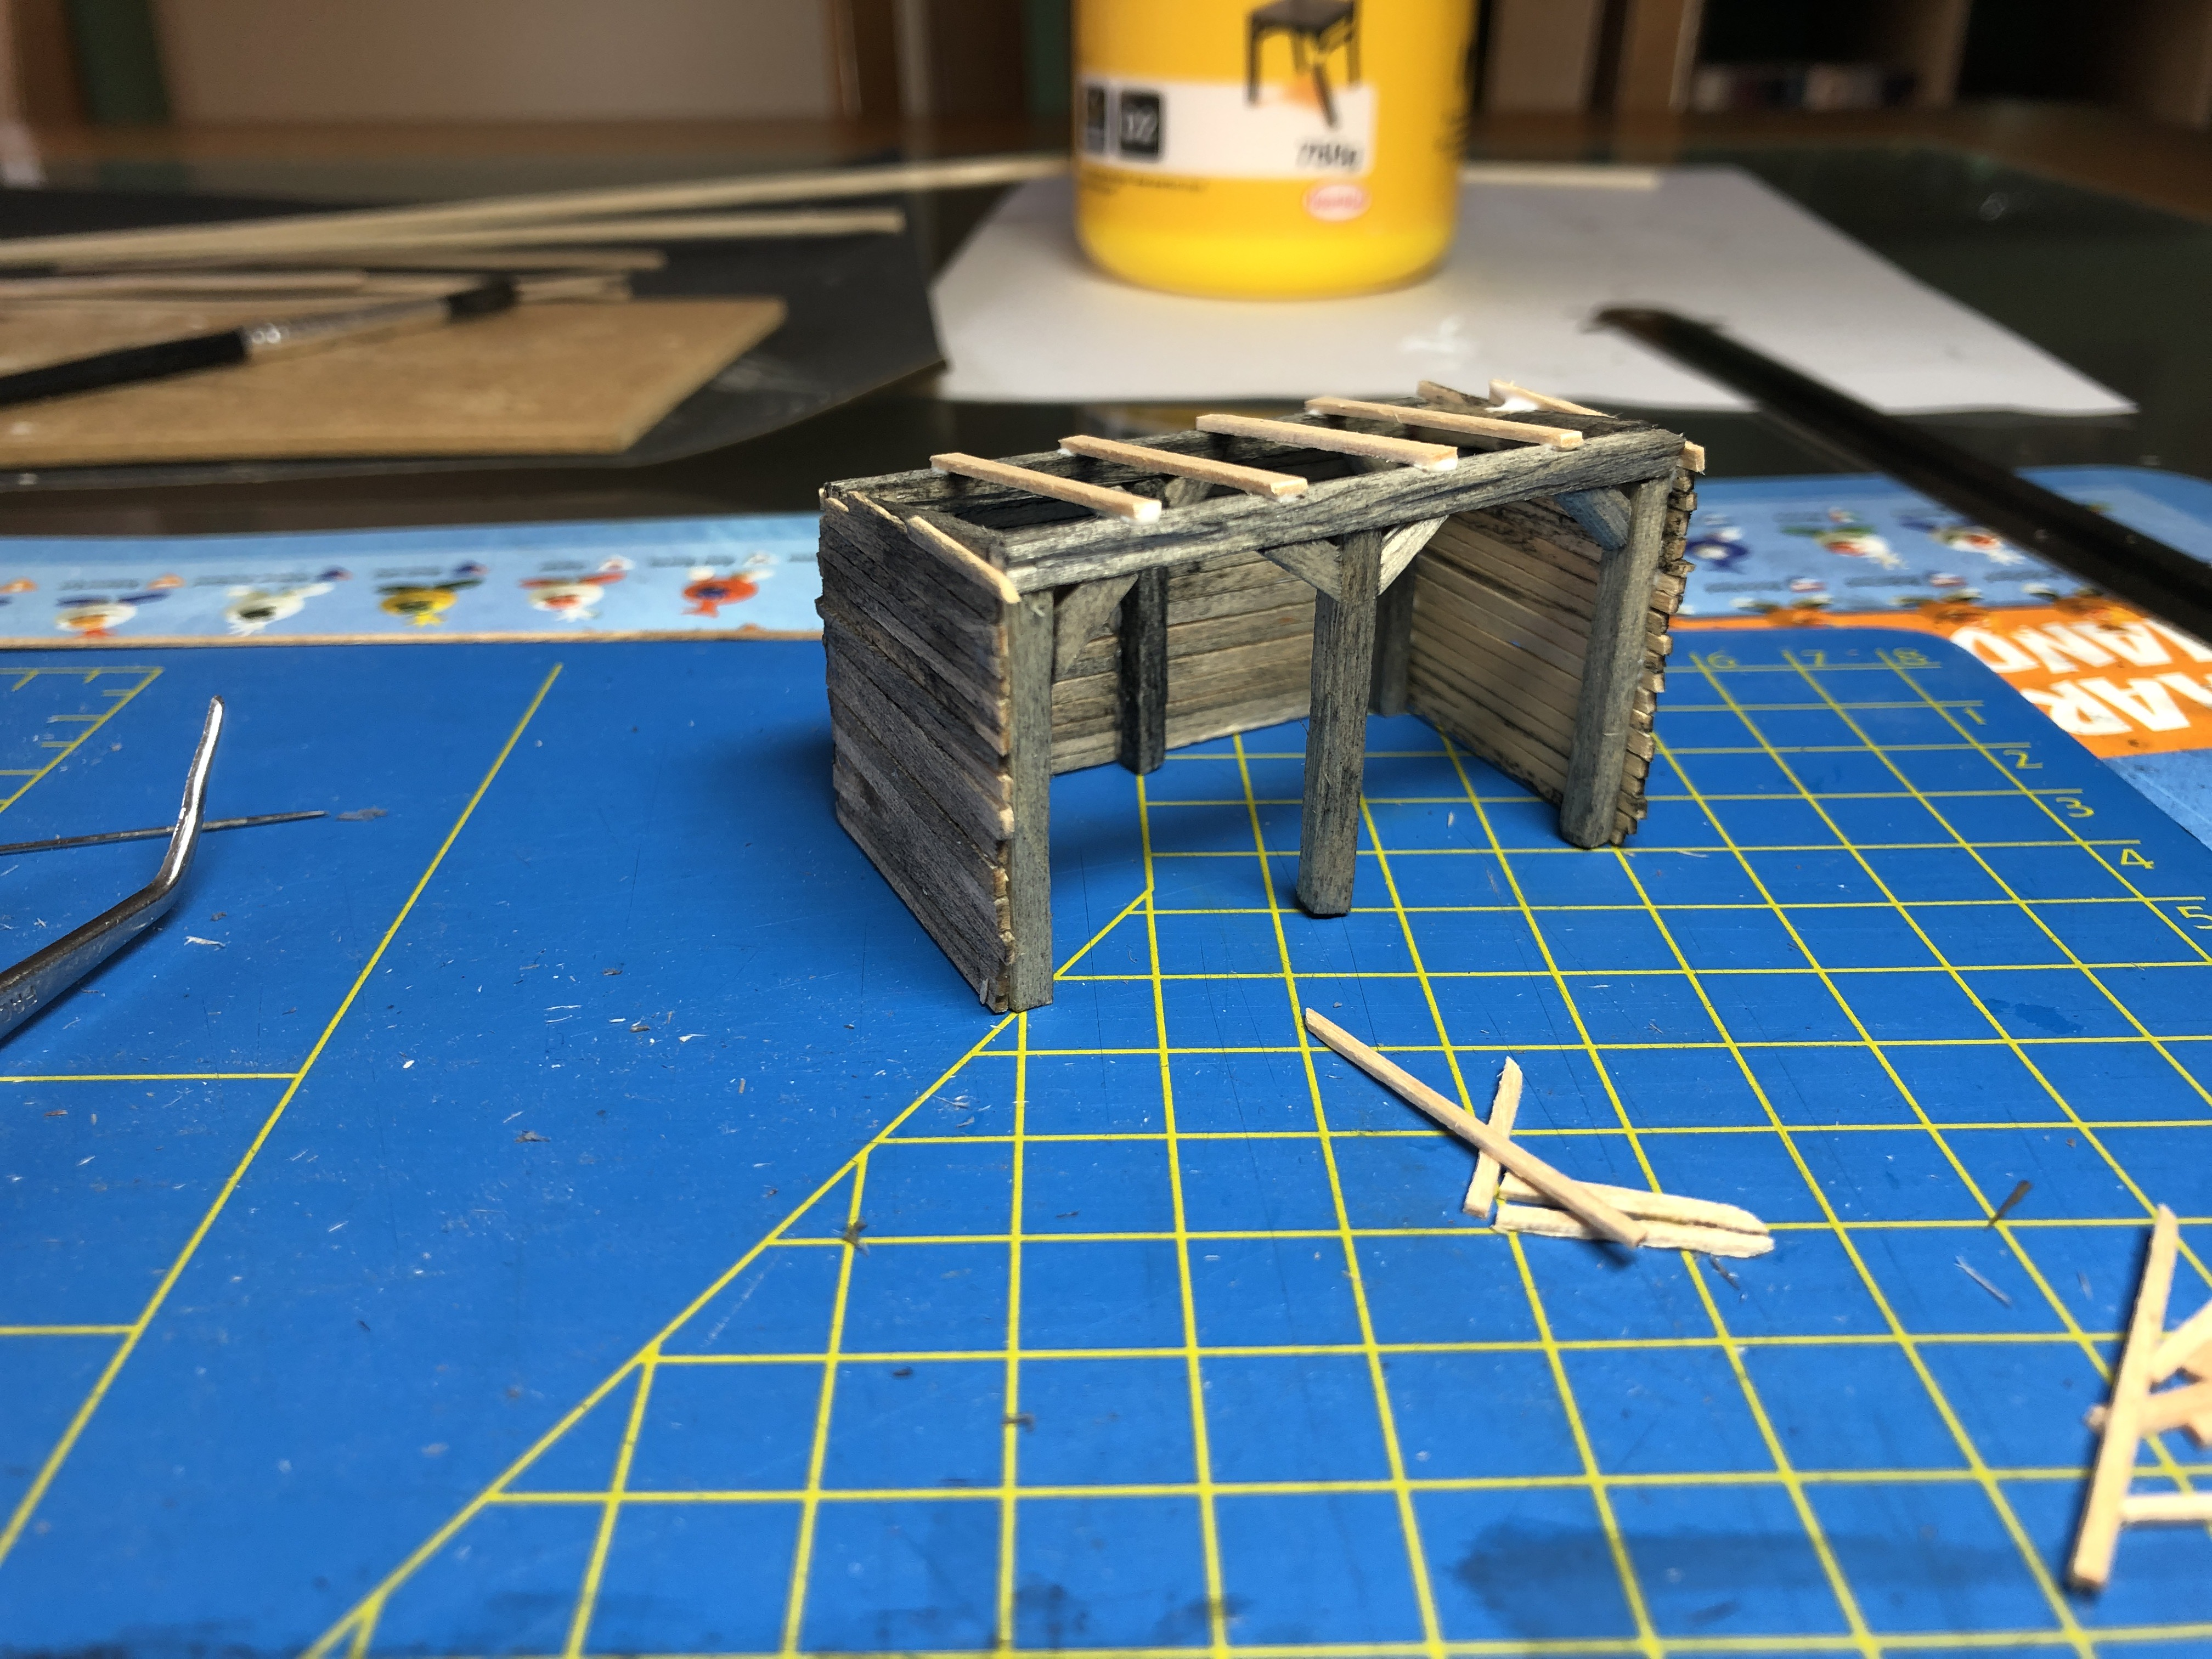 A one day project: Scratch build an animal shelter.